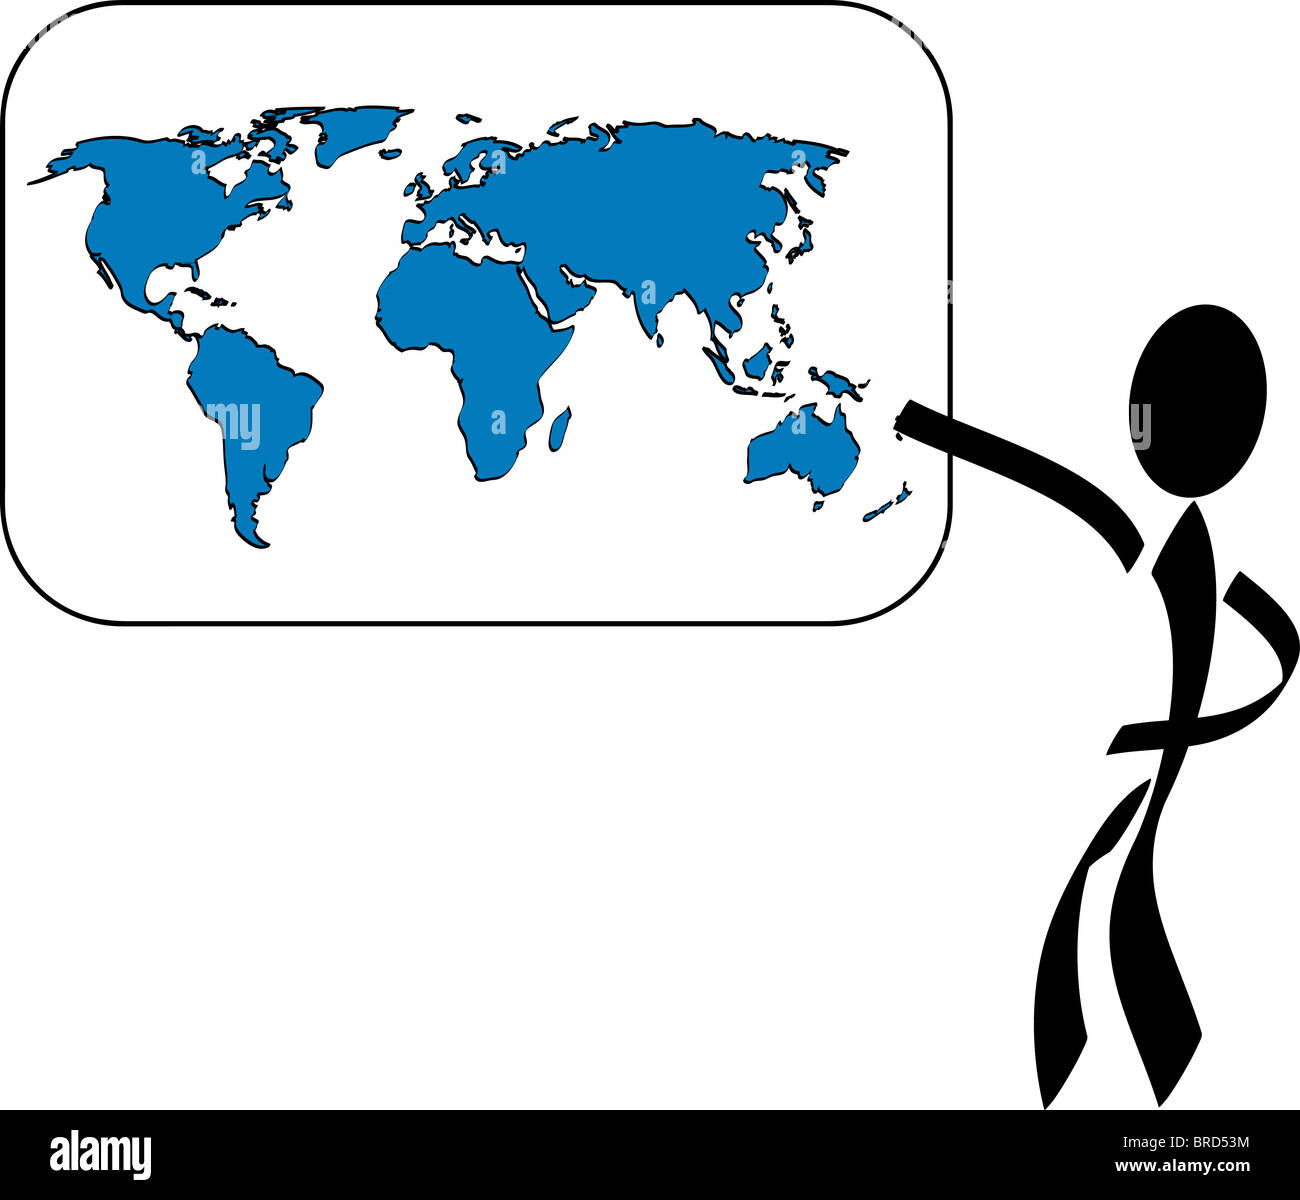 Stylized person pointing on a world map all on white background stylized person pointing on a world map all on white background sciox Image collections